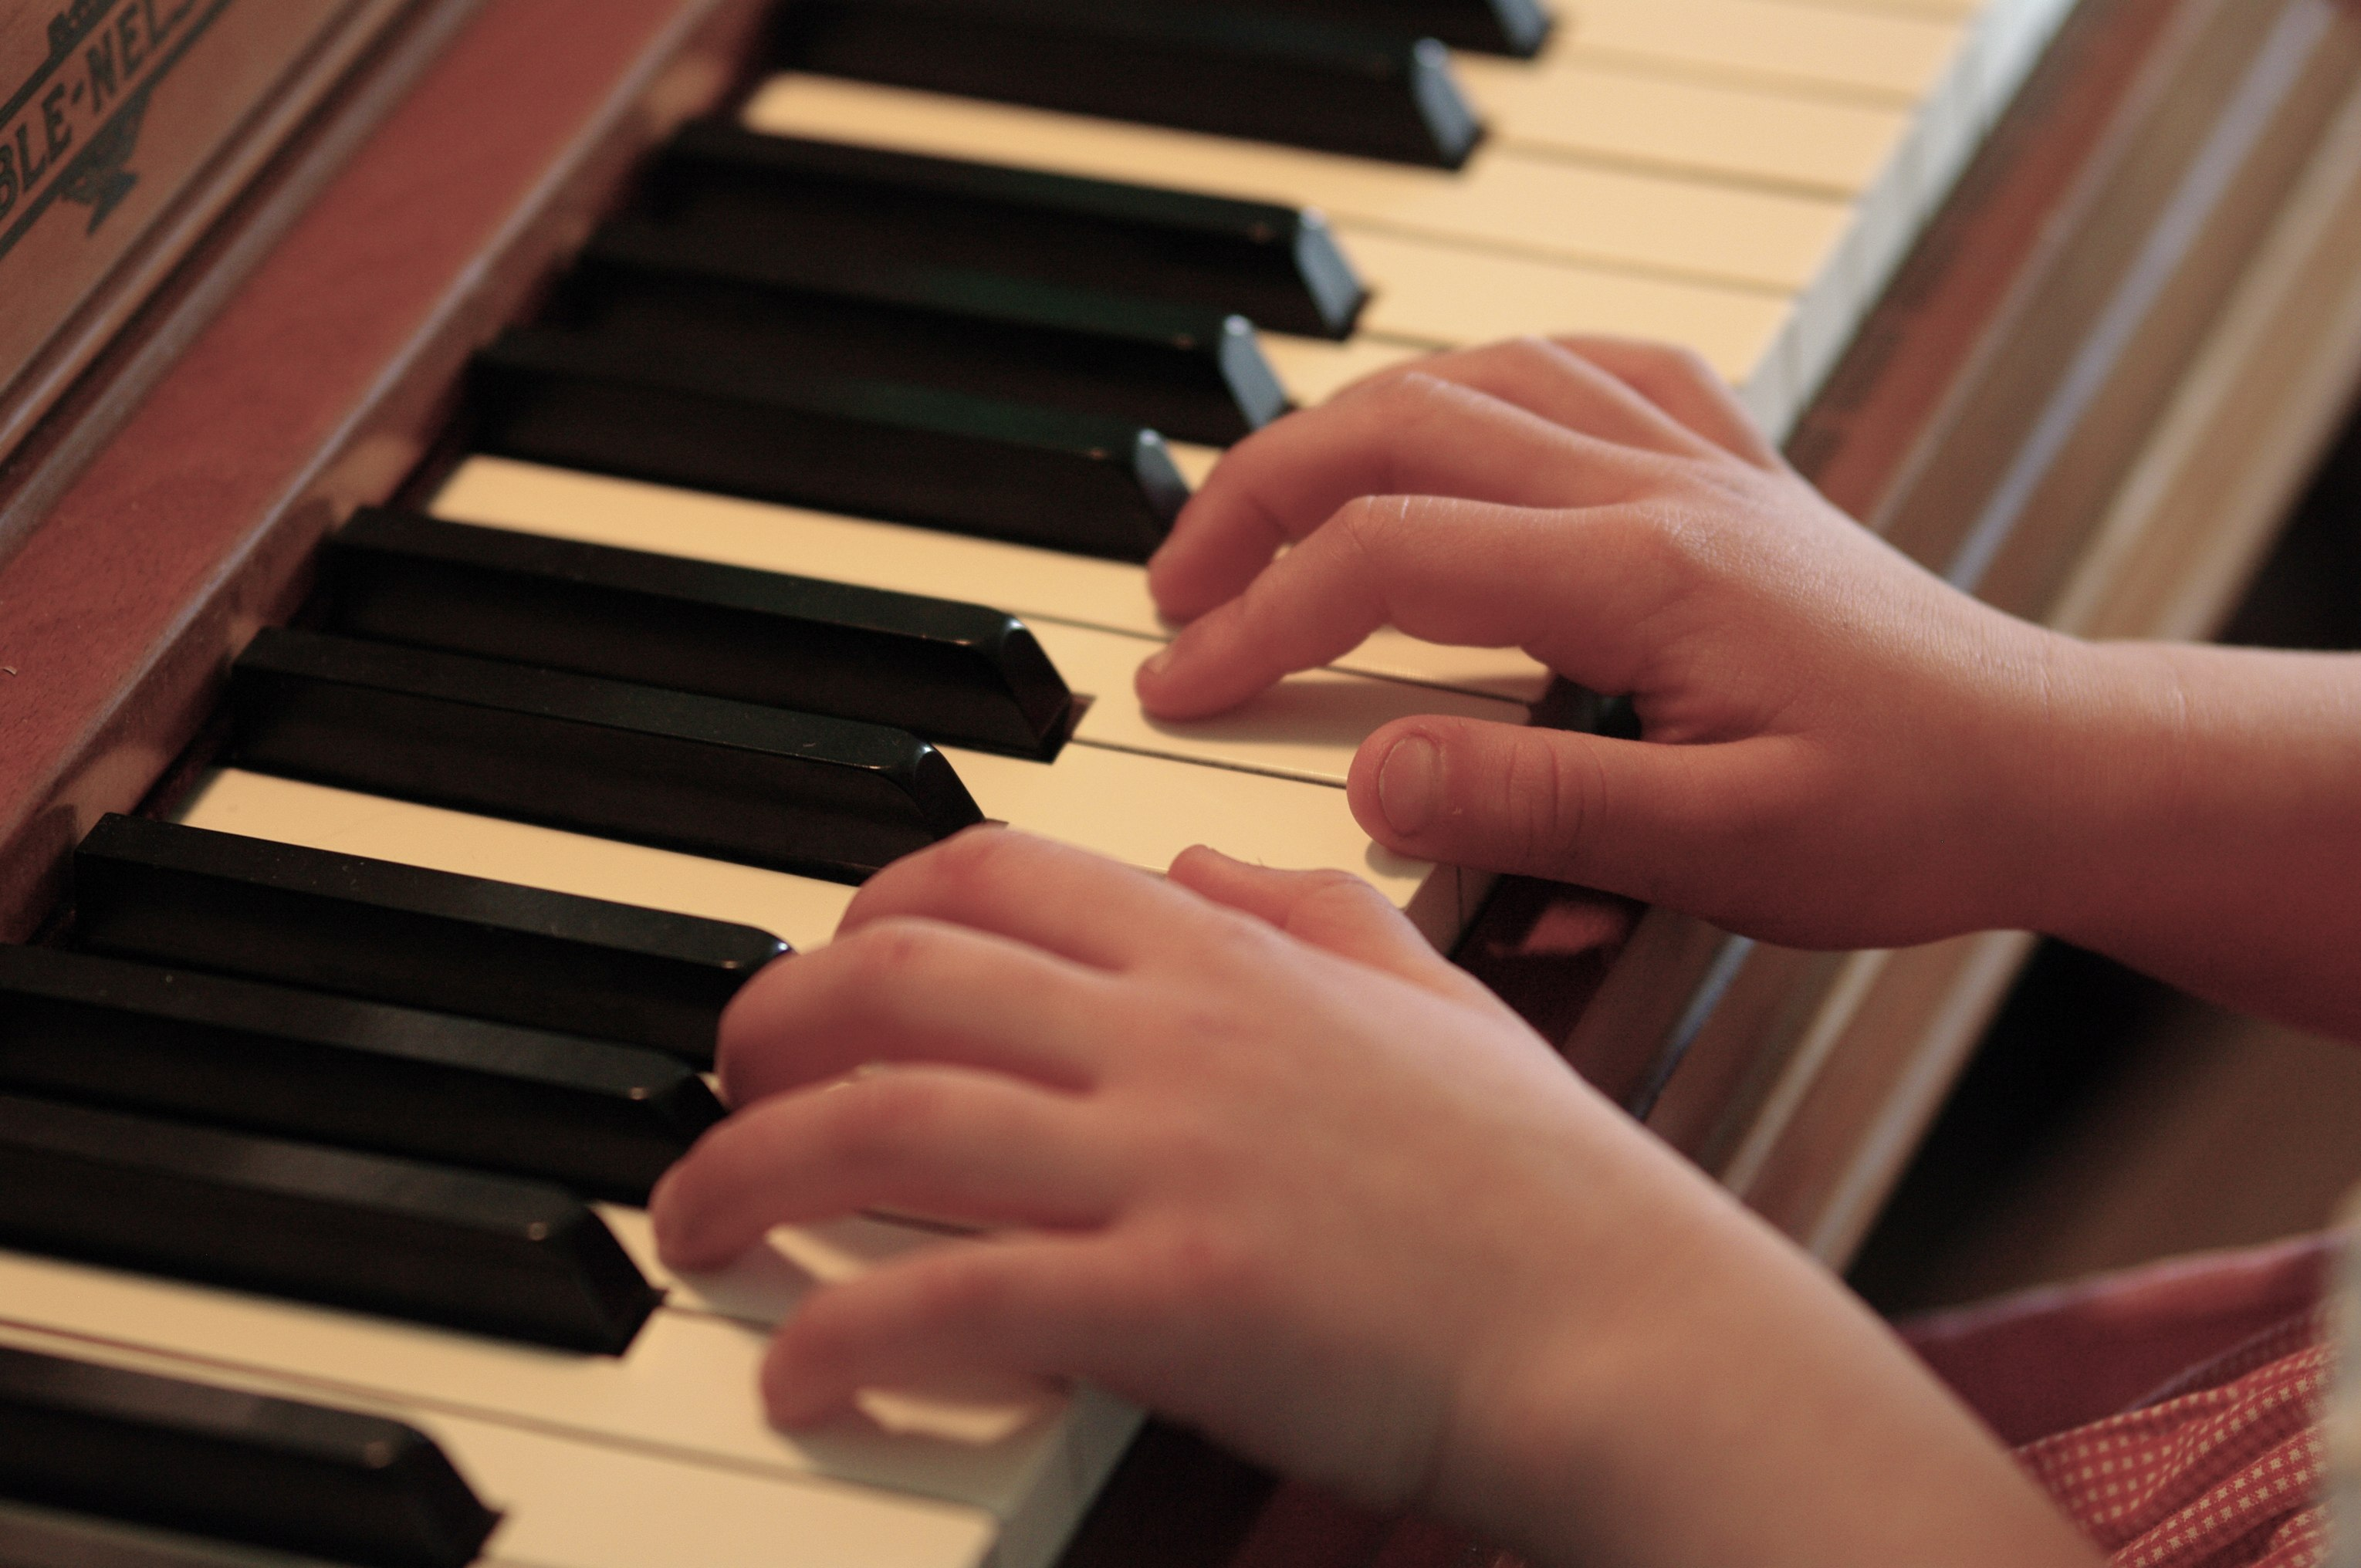 File:Piano practice hands.jpg - Wikimedia Commons